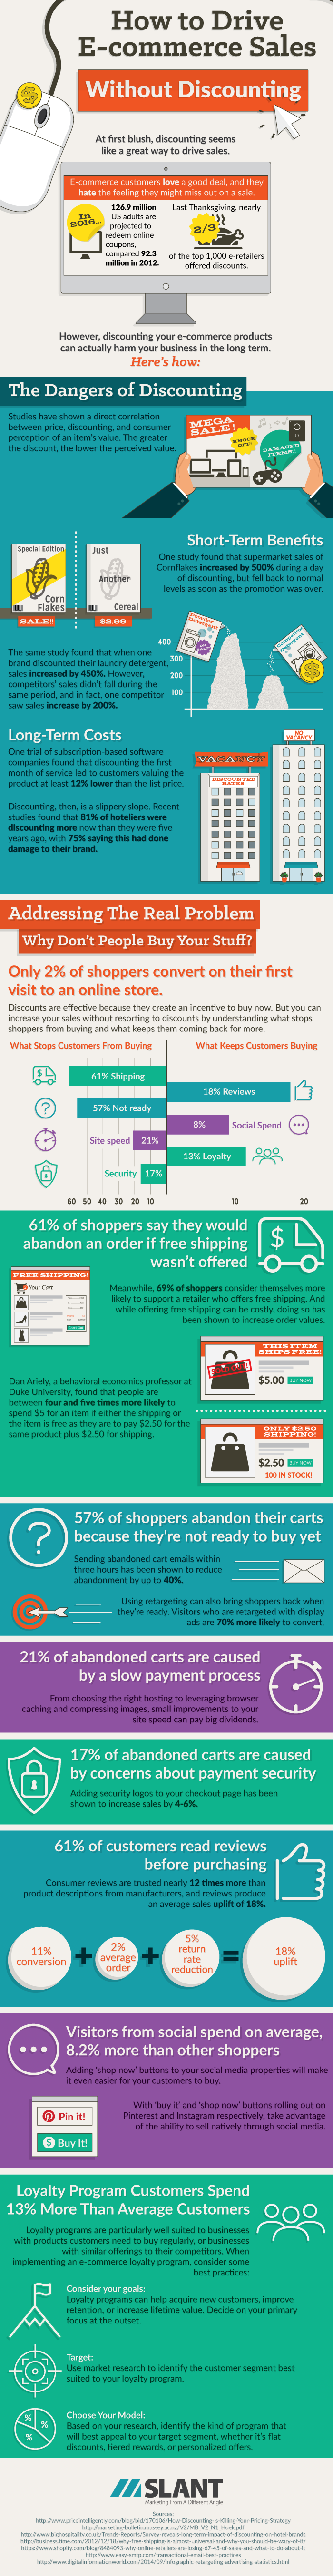 How To Drive E-Commerce Sales